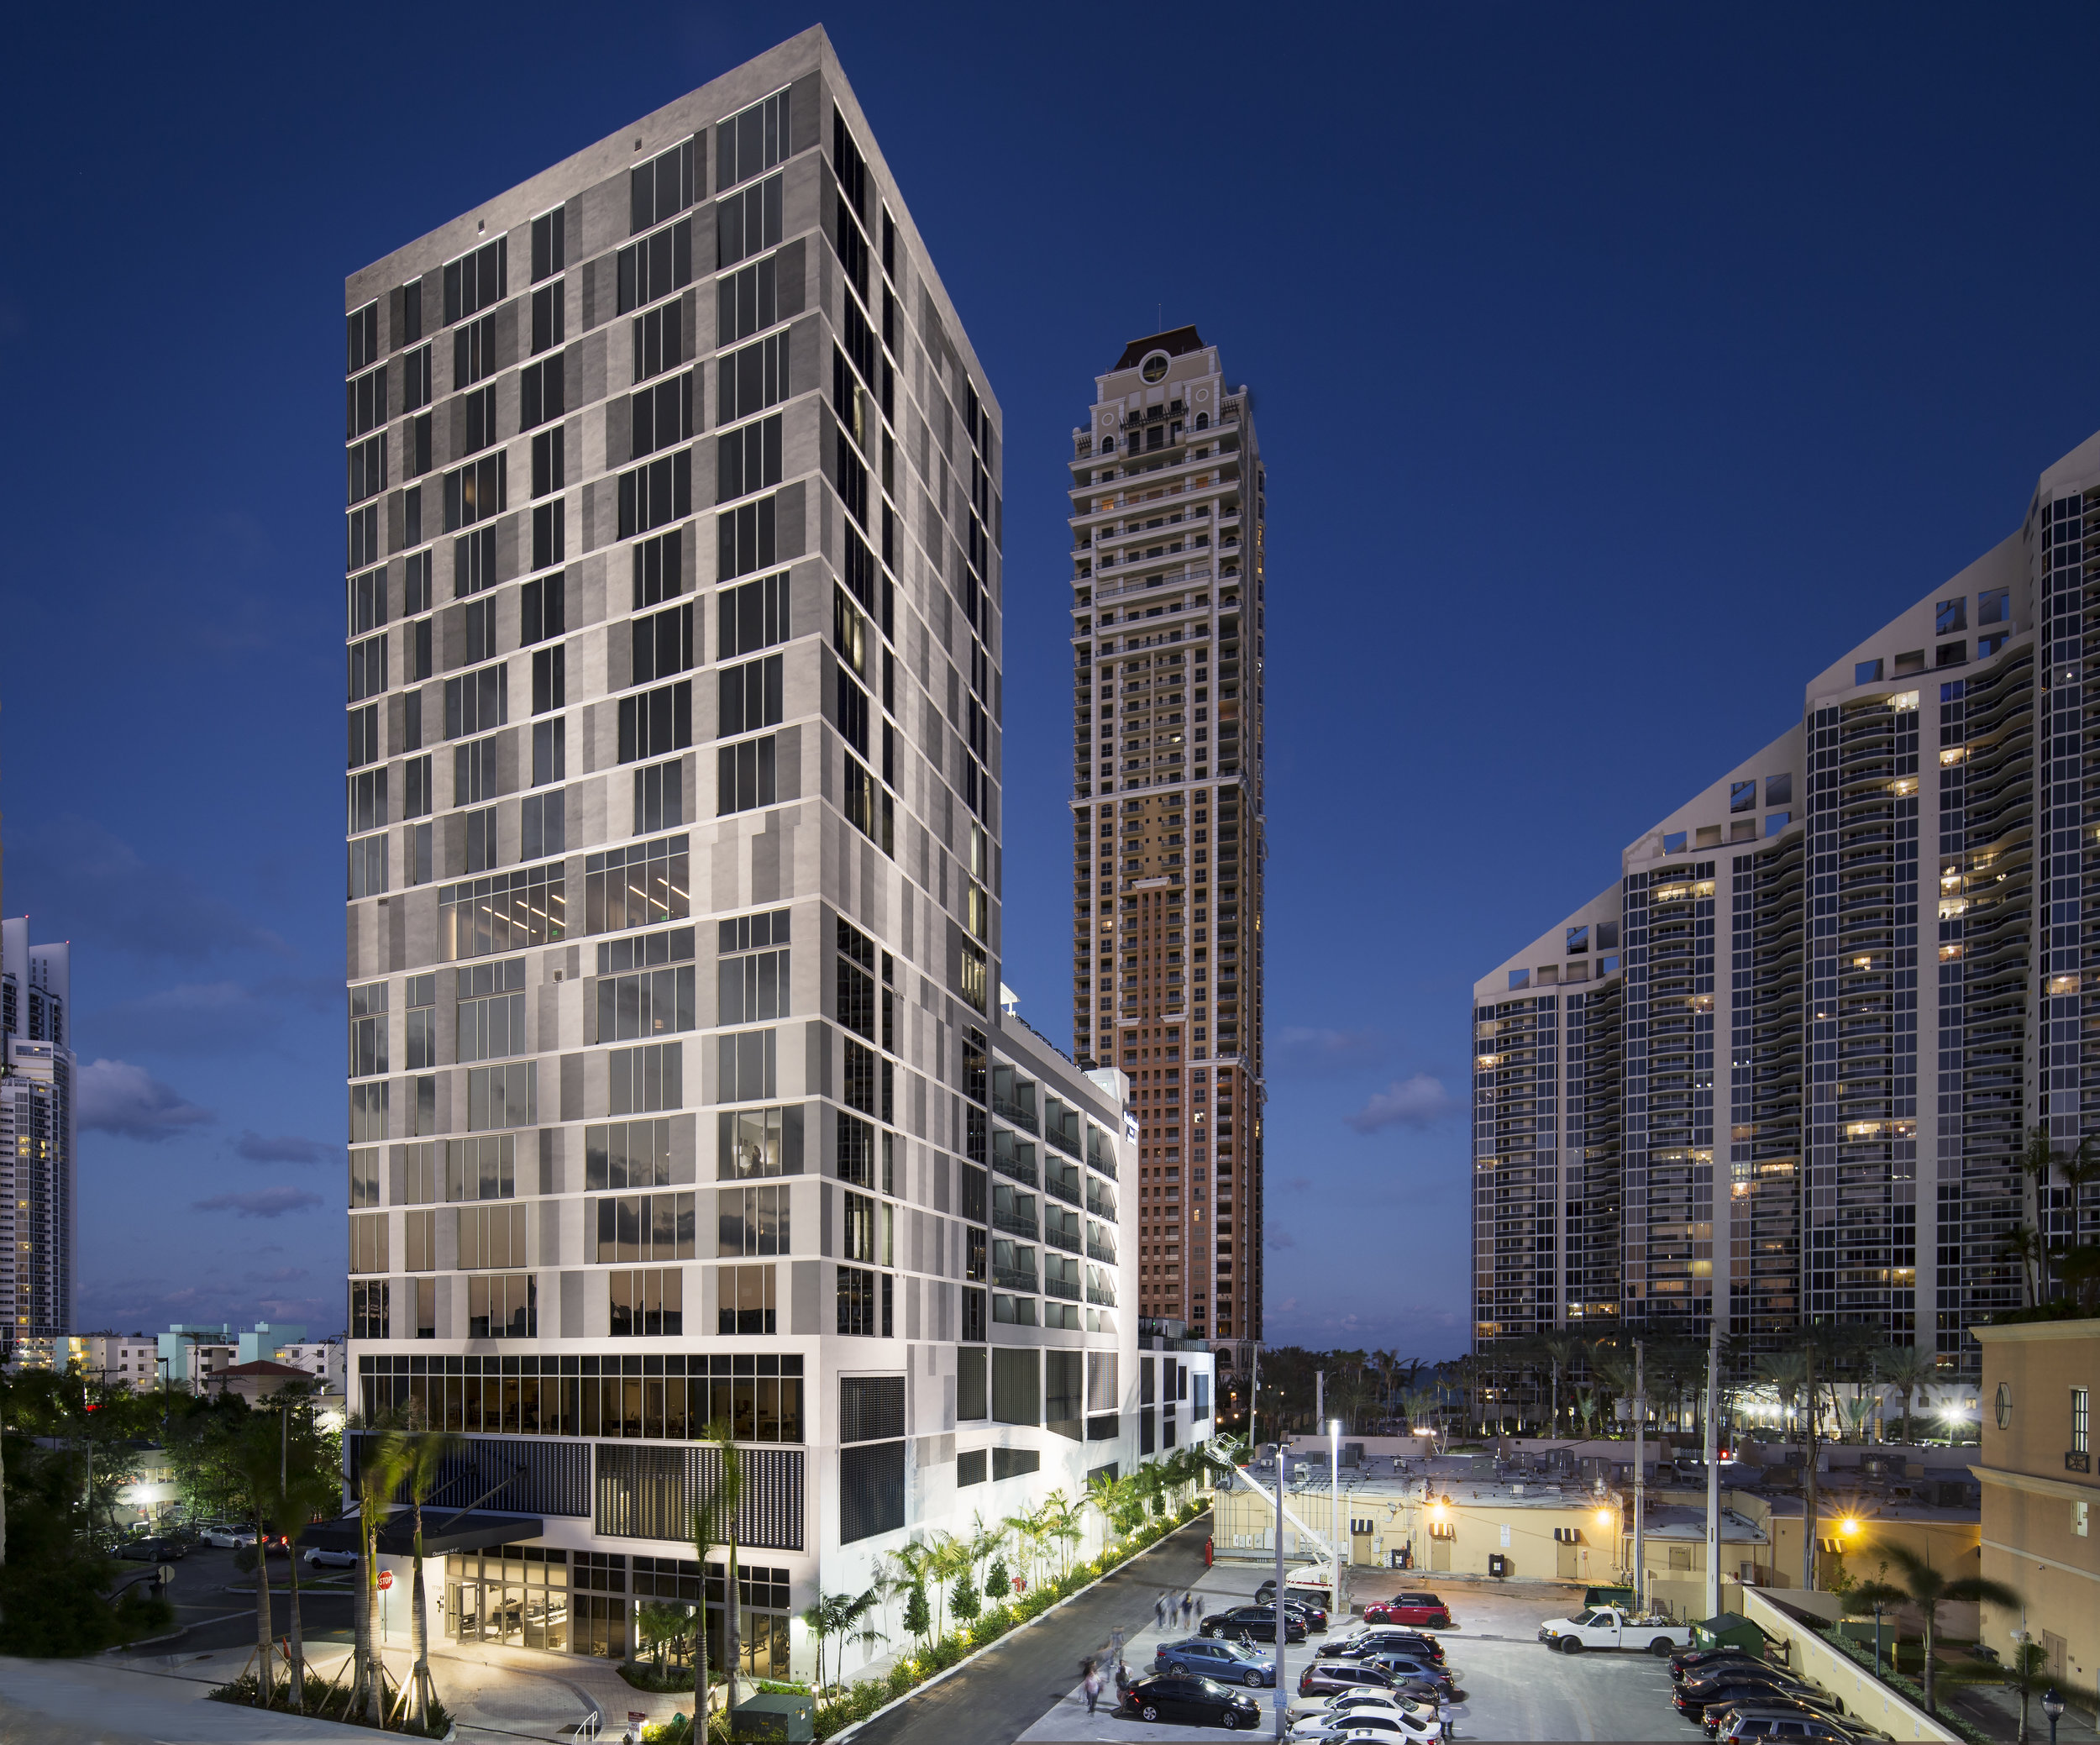 Residence Inn by Marriott Sunny Isles